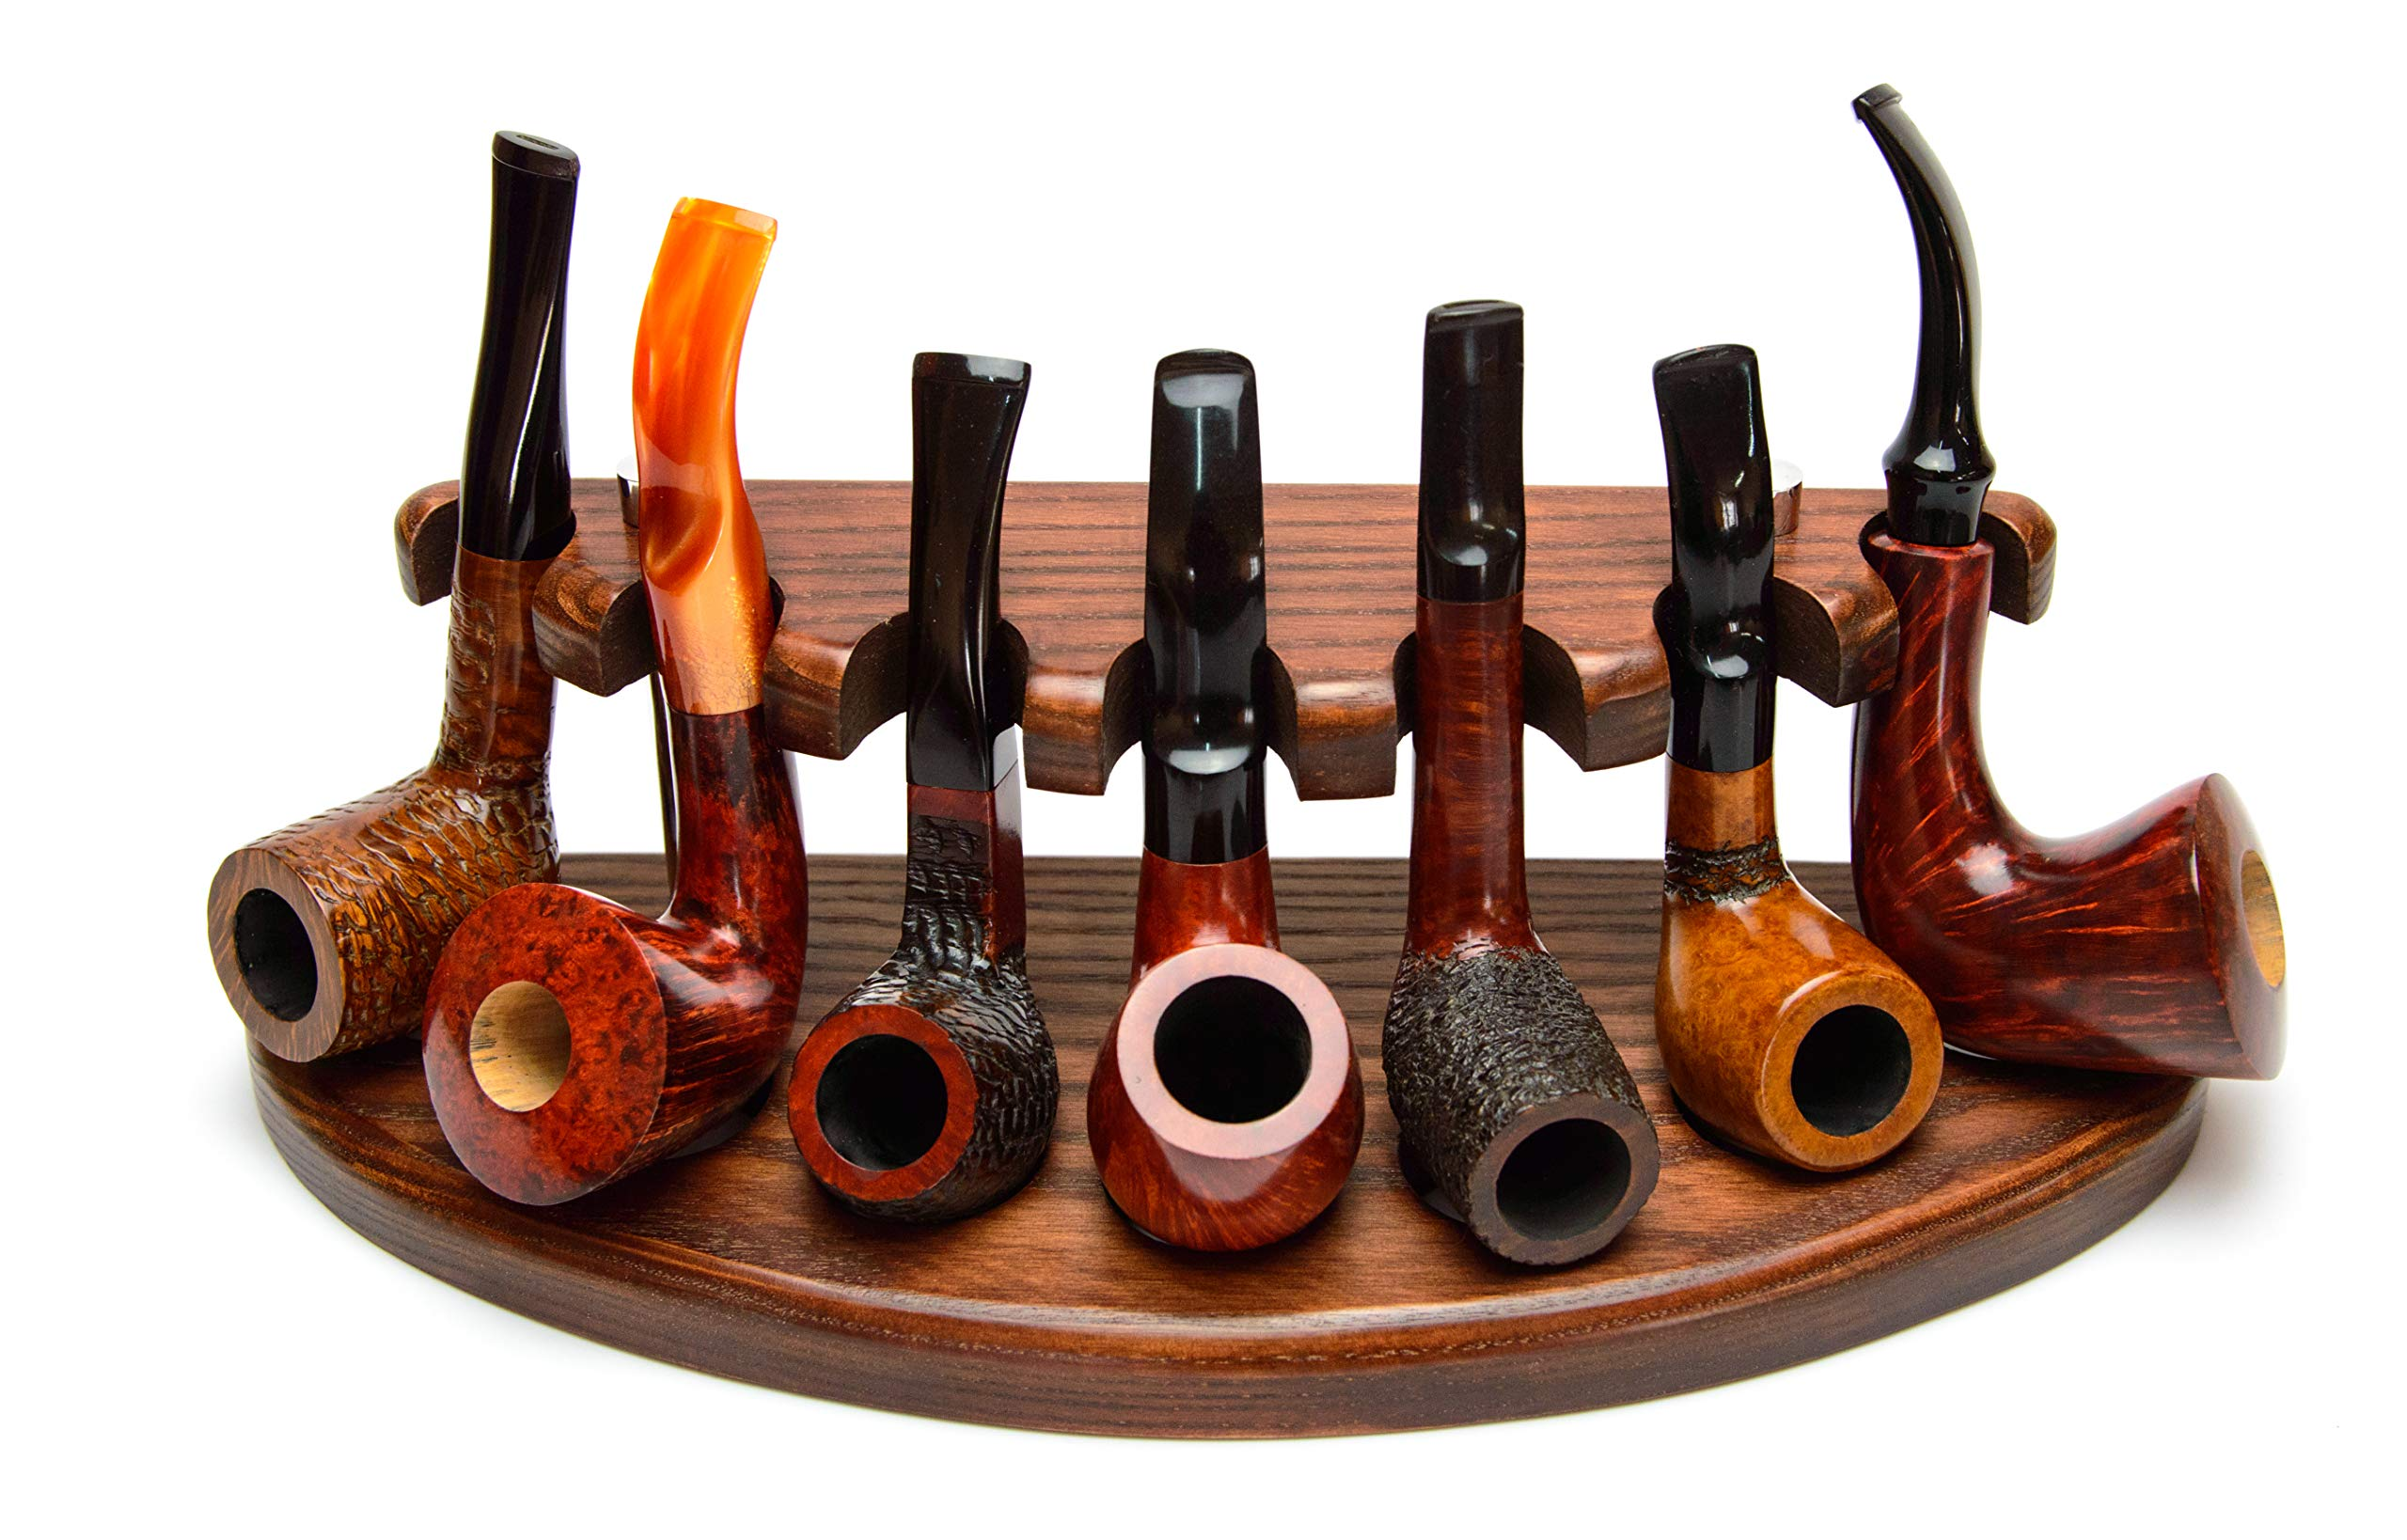 Wooden Tobacco Pipe Stand Rack Display Holder for 7 Smoking Pipes from Solid Ash Tree Wood Hand Carved by KAFpipeWorkshop by KAFpipeWorkshop